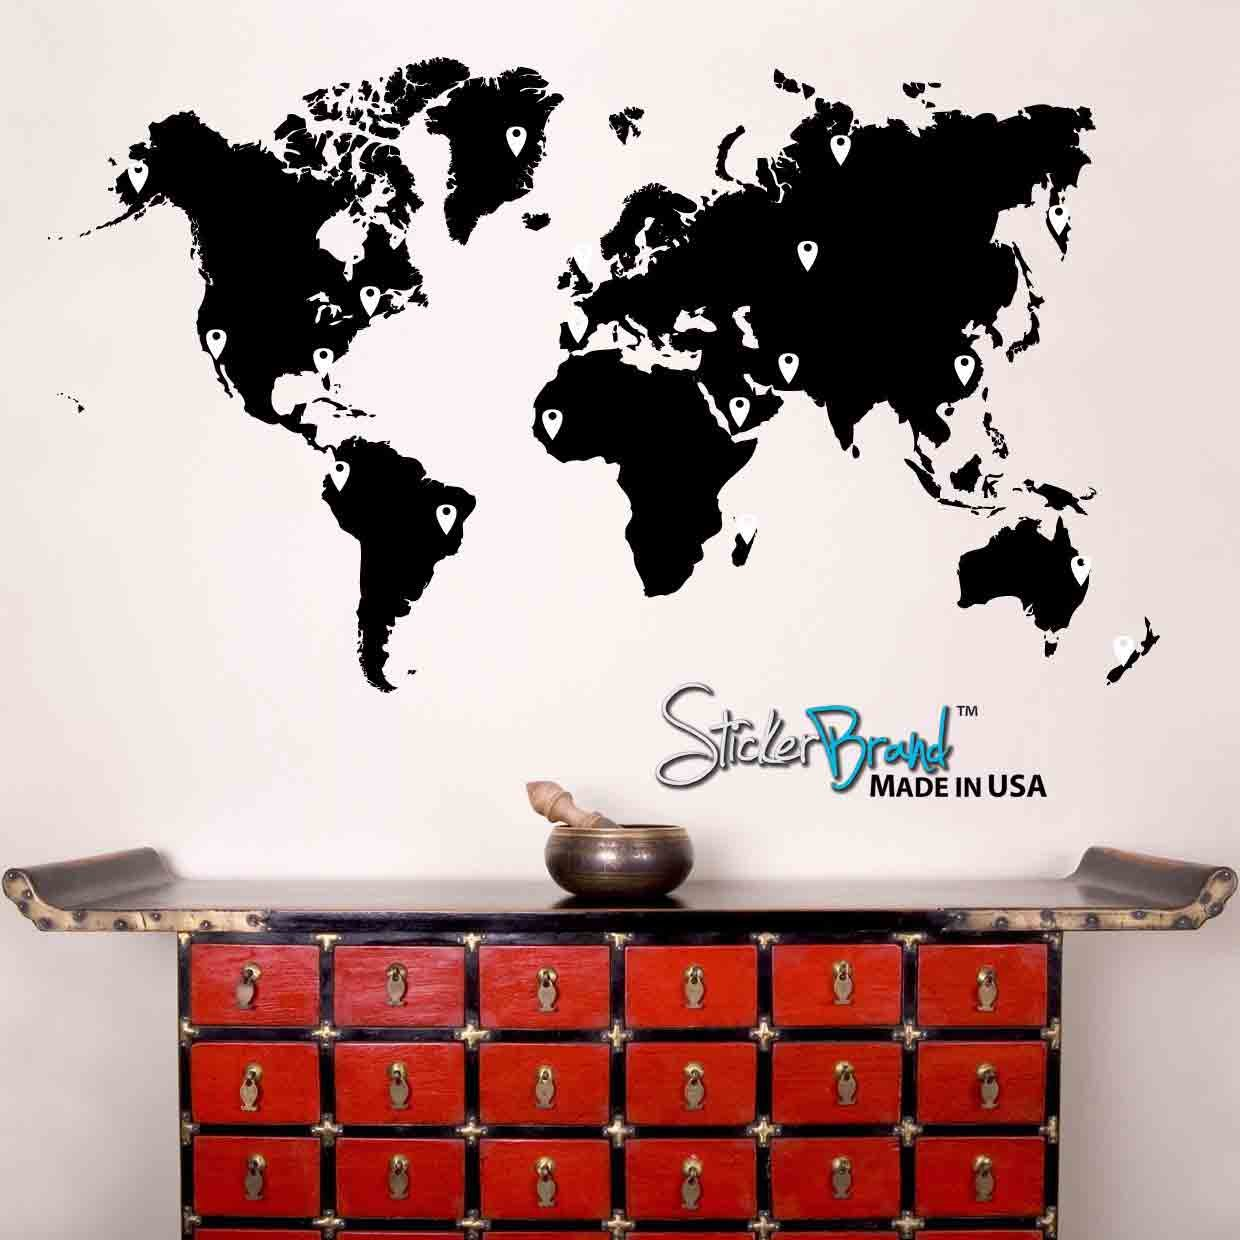 Amazoncom Stickerbrand Vinyl Wall Art World Map Of Earth With - Find us on google maps stickers